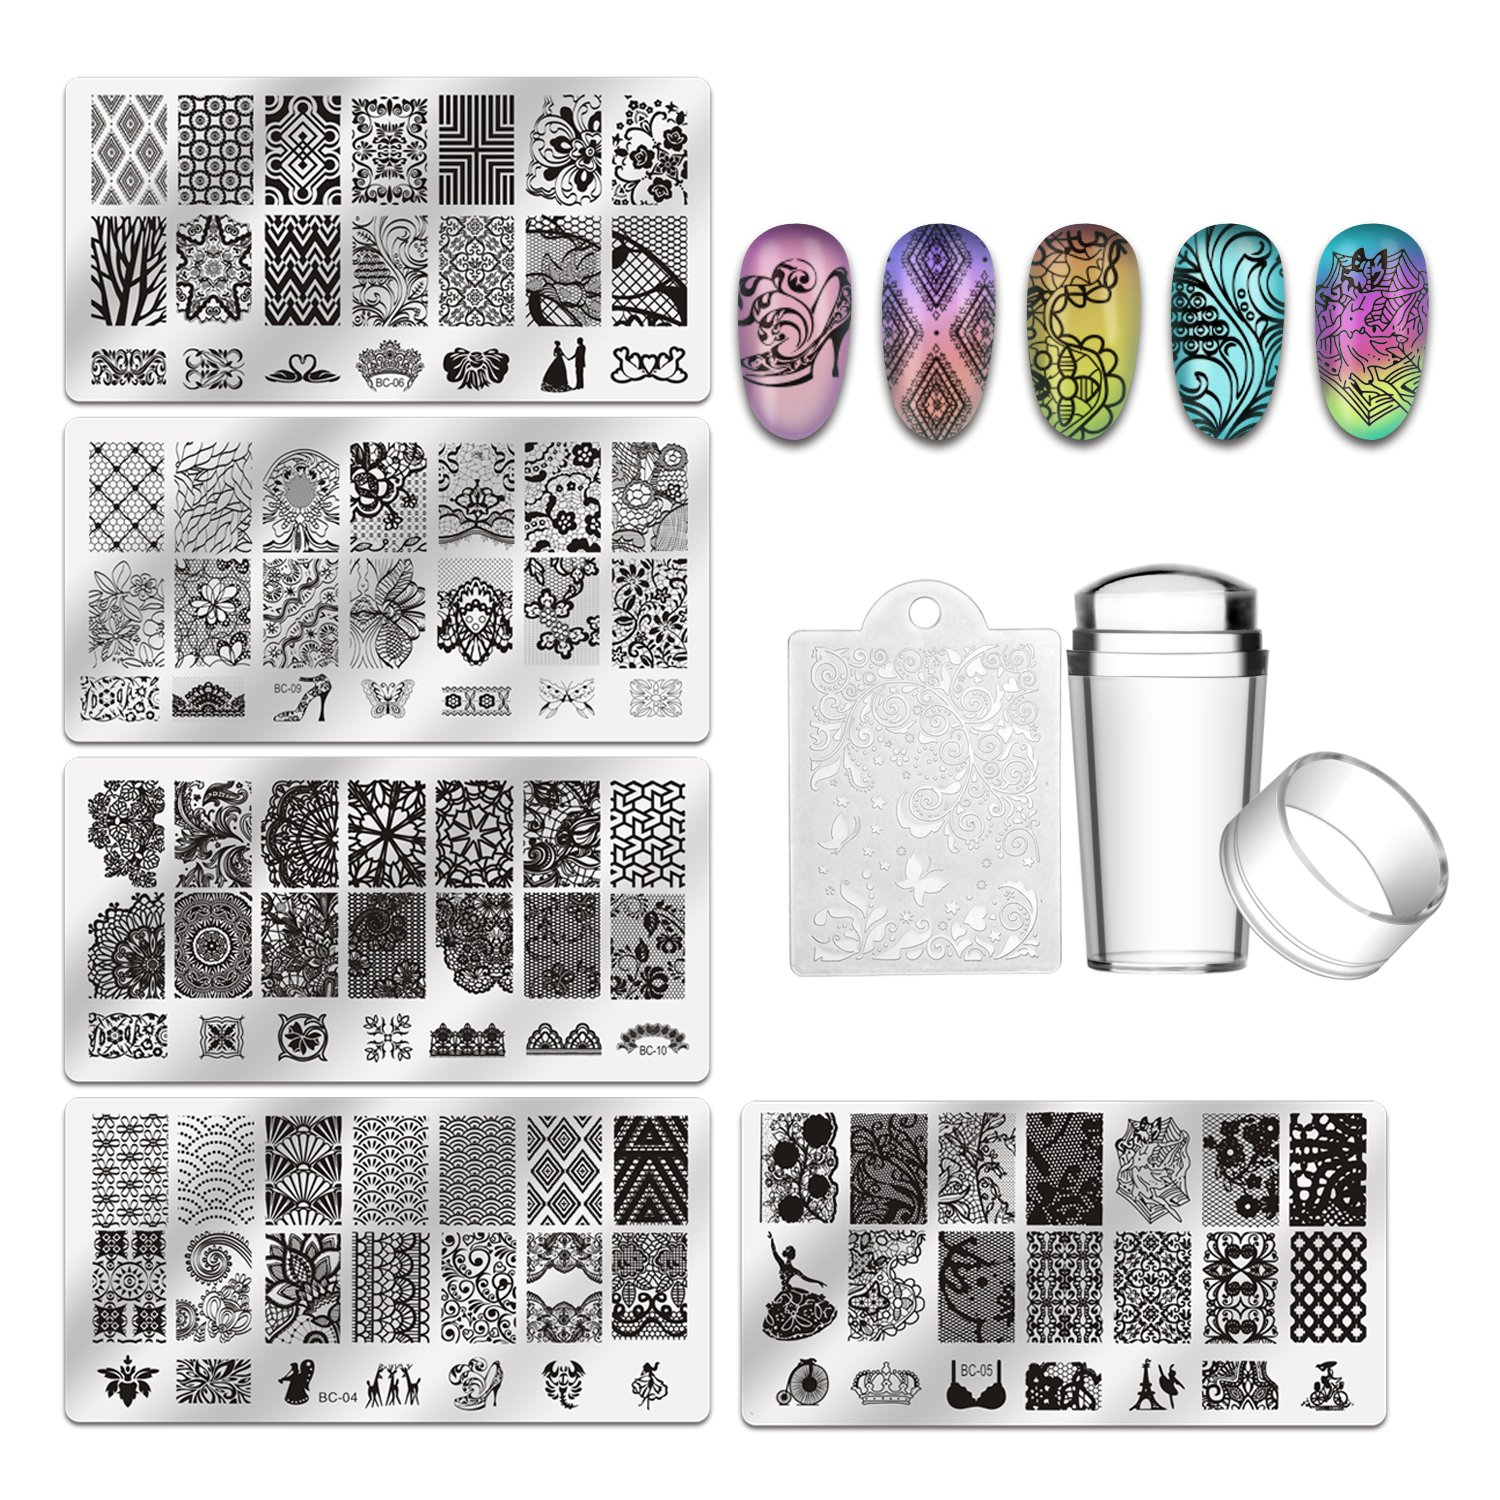 Biutee 19pcs Nail Stamp Plates set 15 plate 1 Dual-heads Stamper 2Scraper 1storage bag Nails Art Stamping Plate Scraper Stamper Set Leaves Flowers Animal Nail plate Template Image Plate TOOL-AT-777